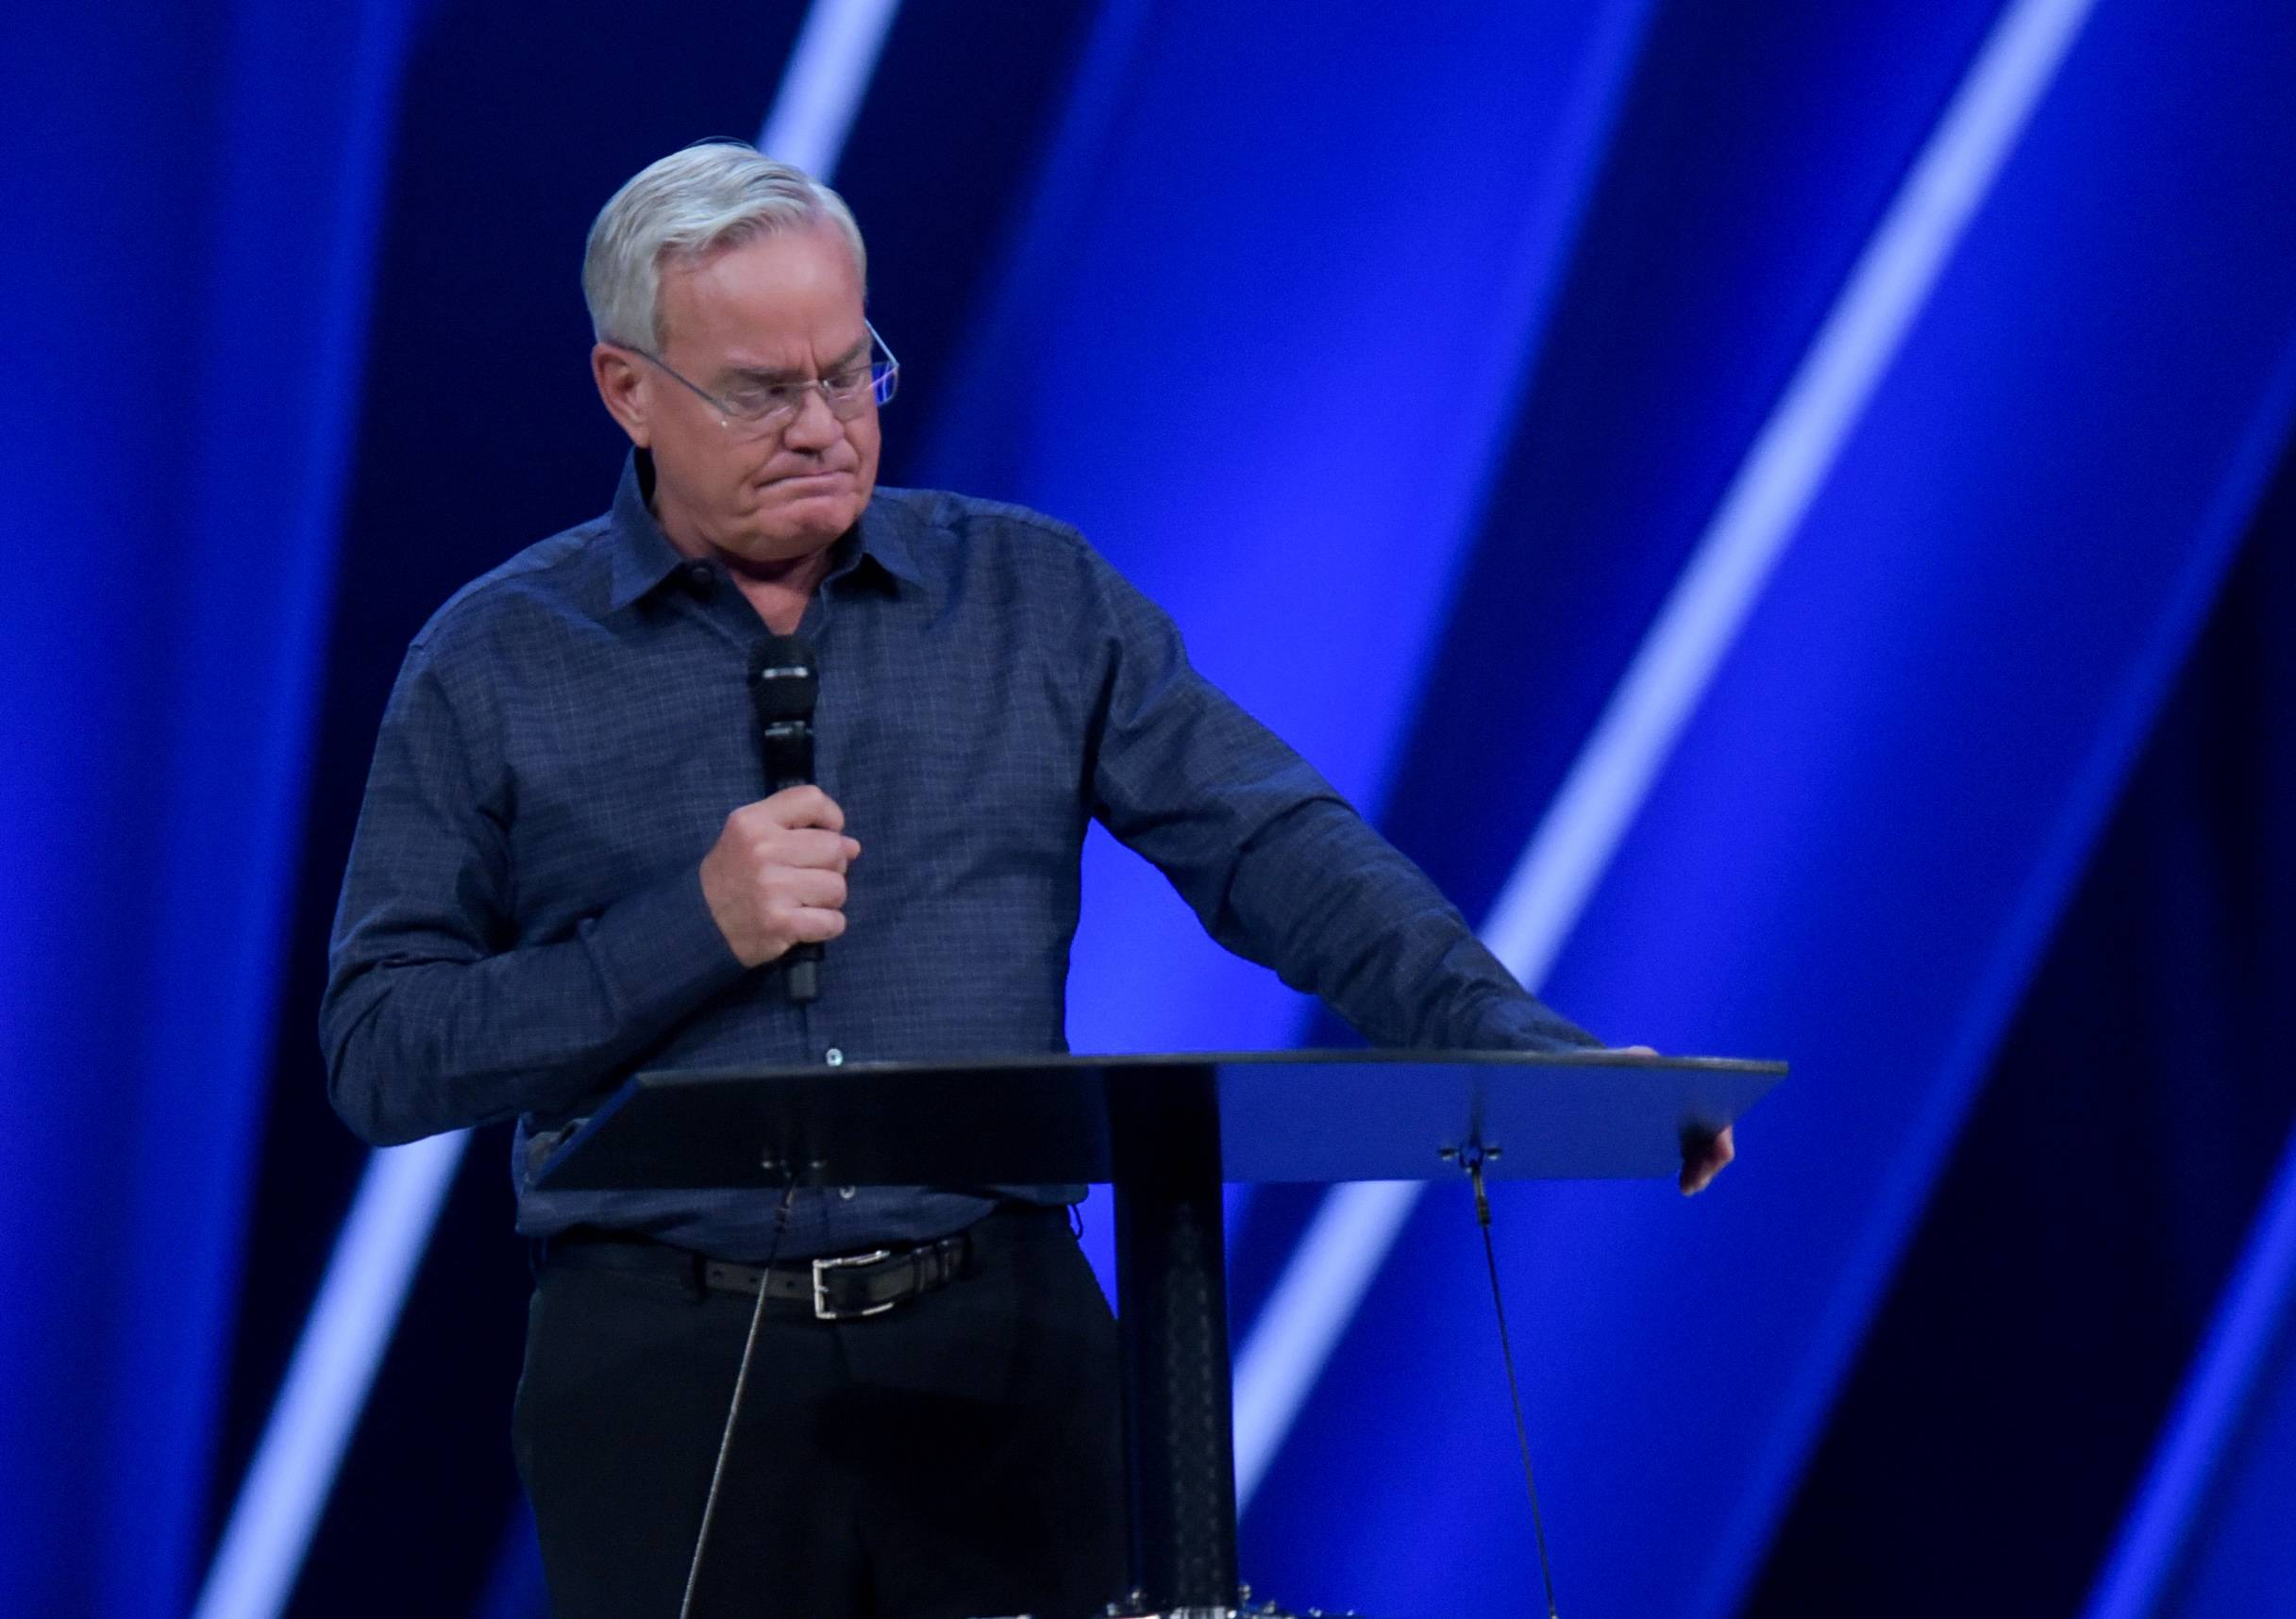 Willow Creek Community Church founder Bill Hybels resigned from his position as senior pastor in April amid allegations of sexual harassment.